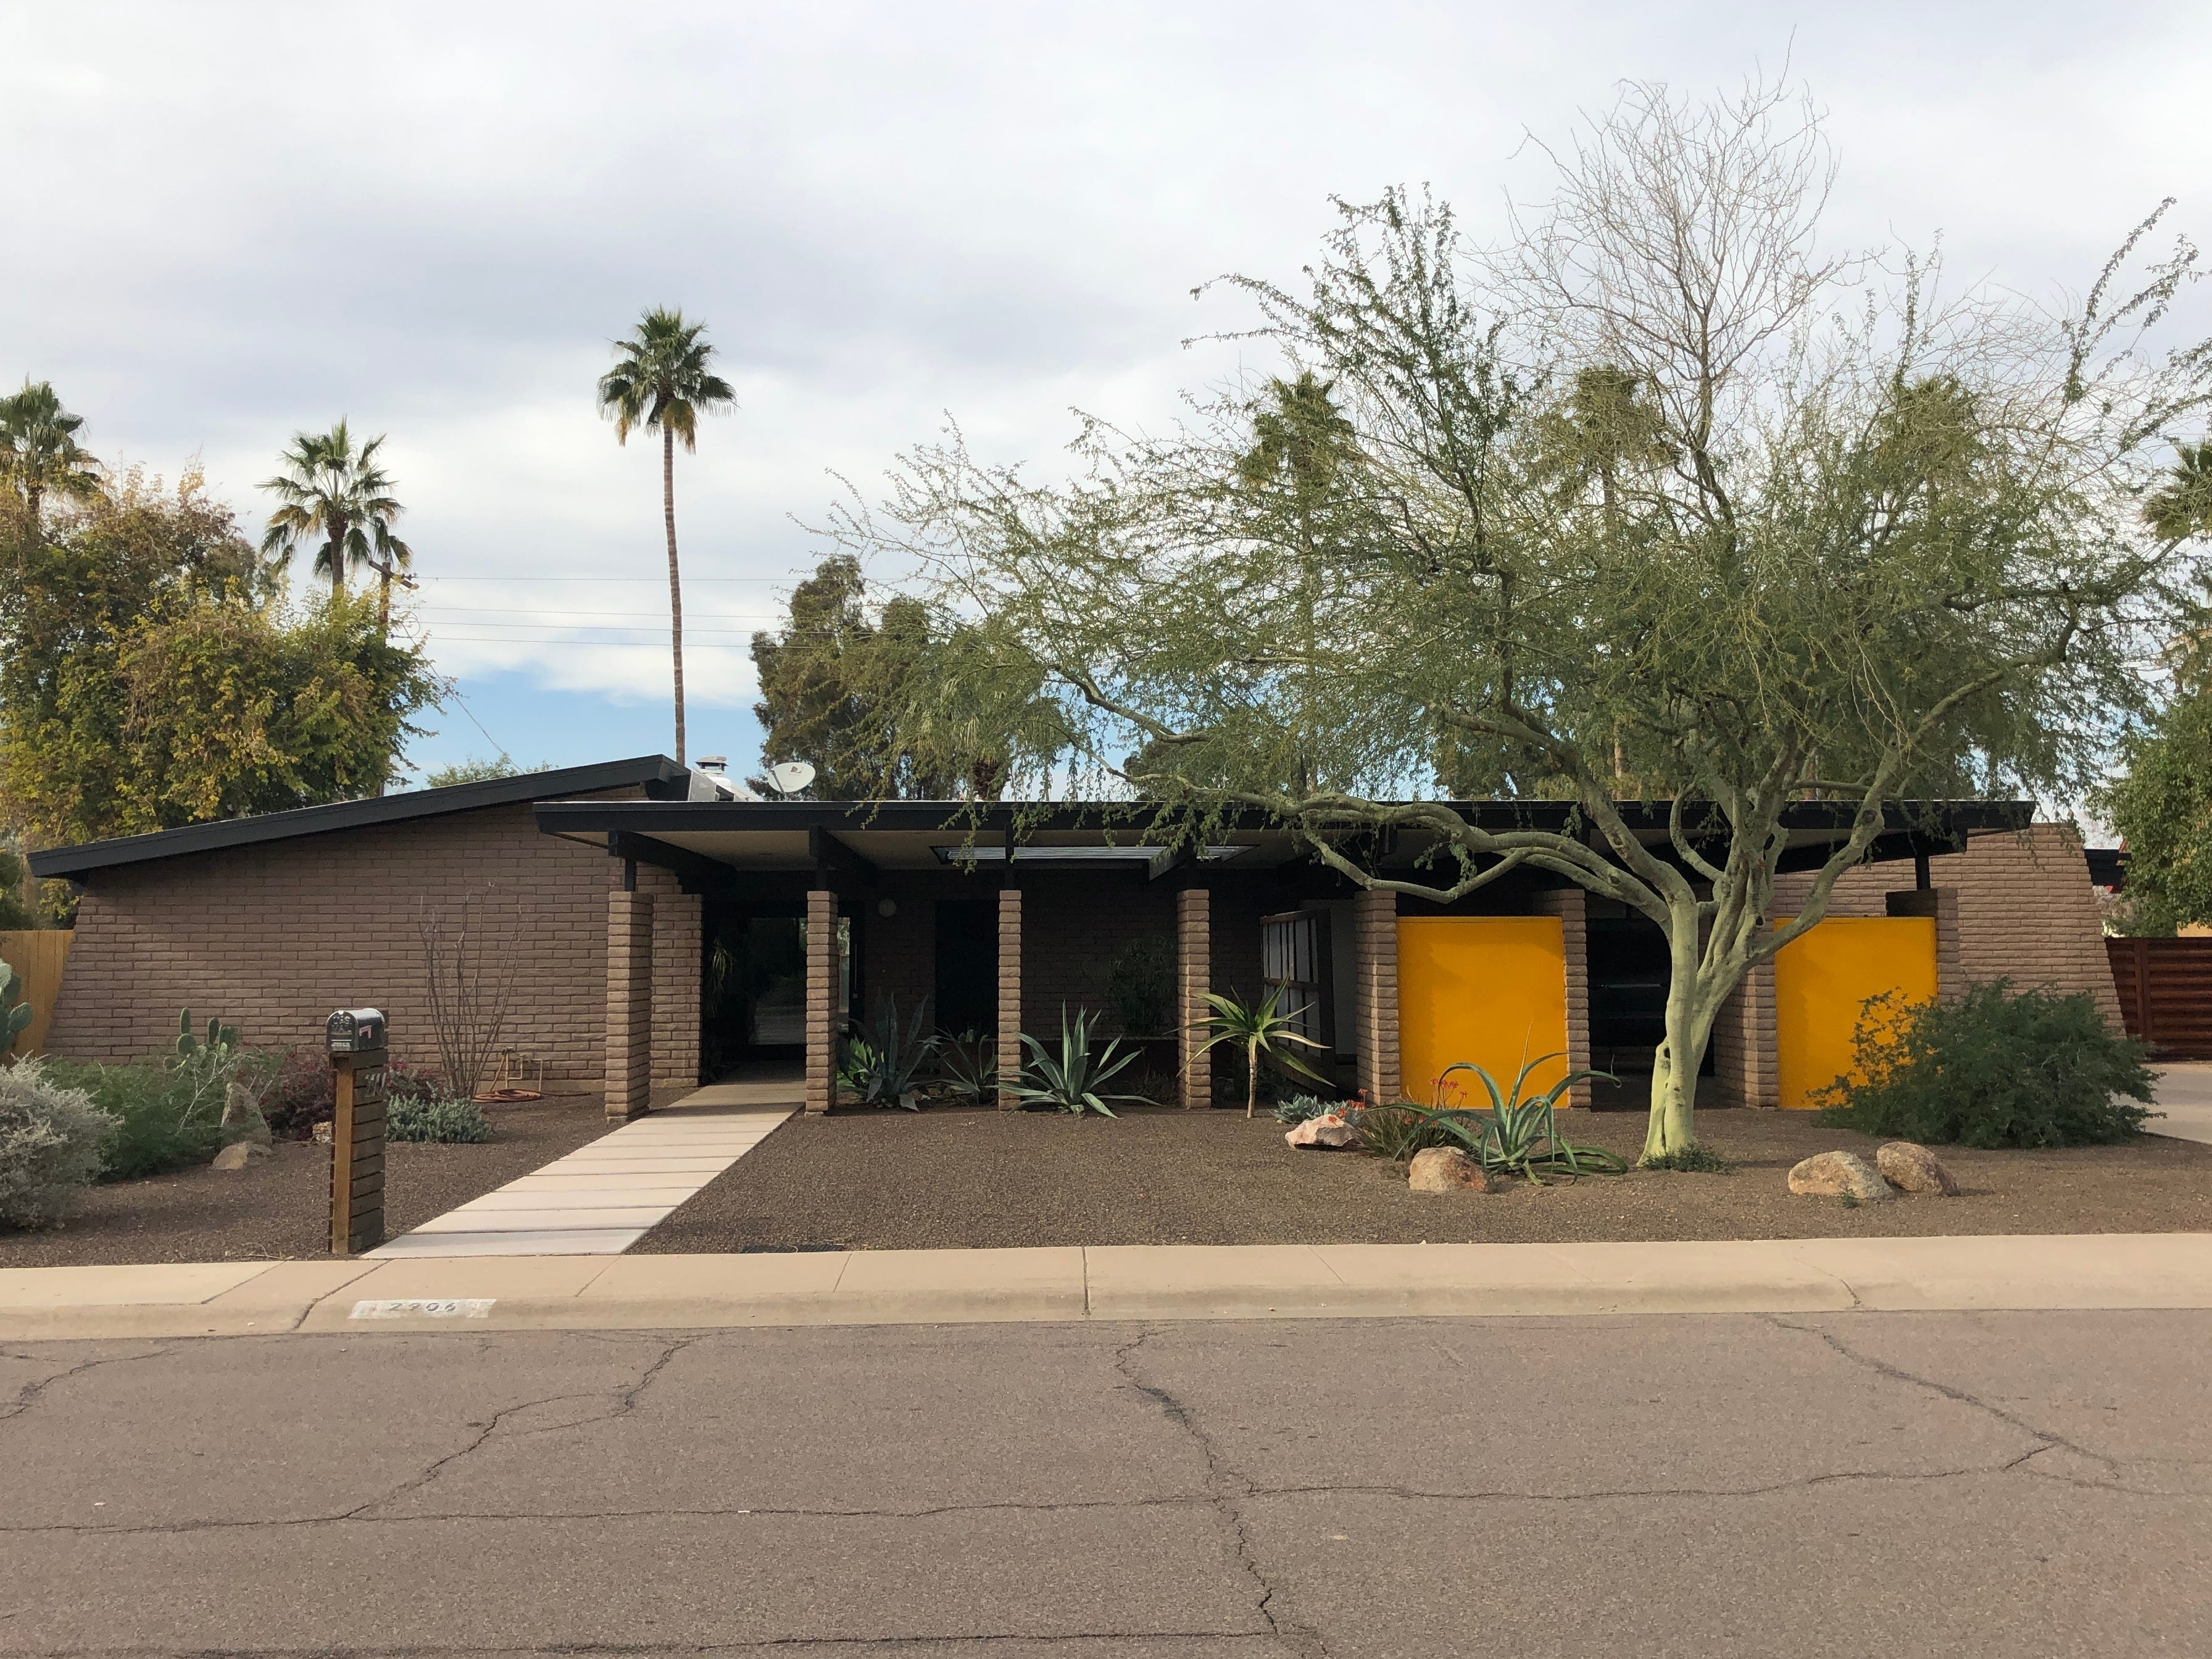 Daryl Vierra's Shalimar Golf Course-area home in Tempe was built in 1963, by the family of the late Sam Stapley of the historic O.S. Stapley Company hardware and equipment business.